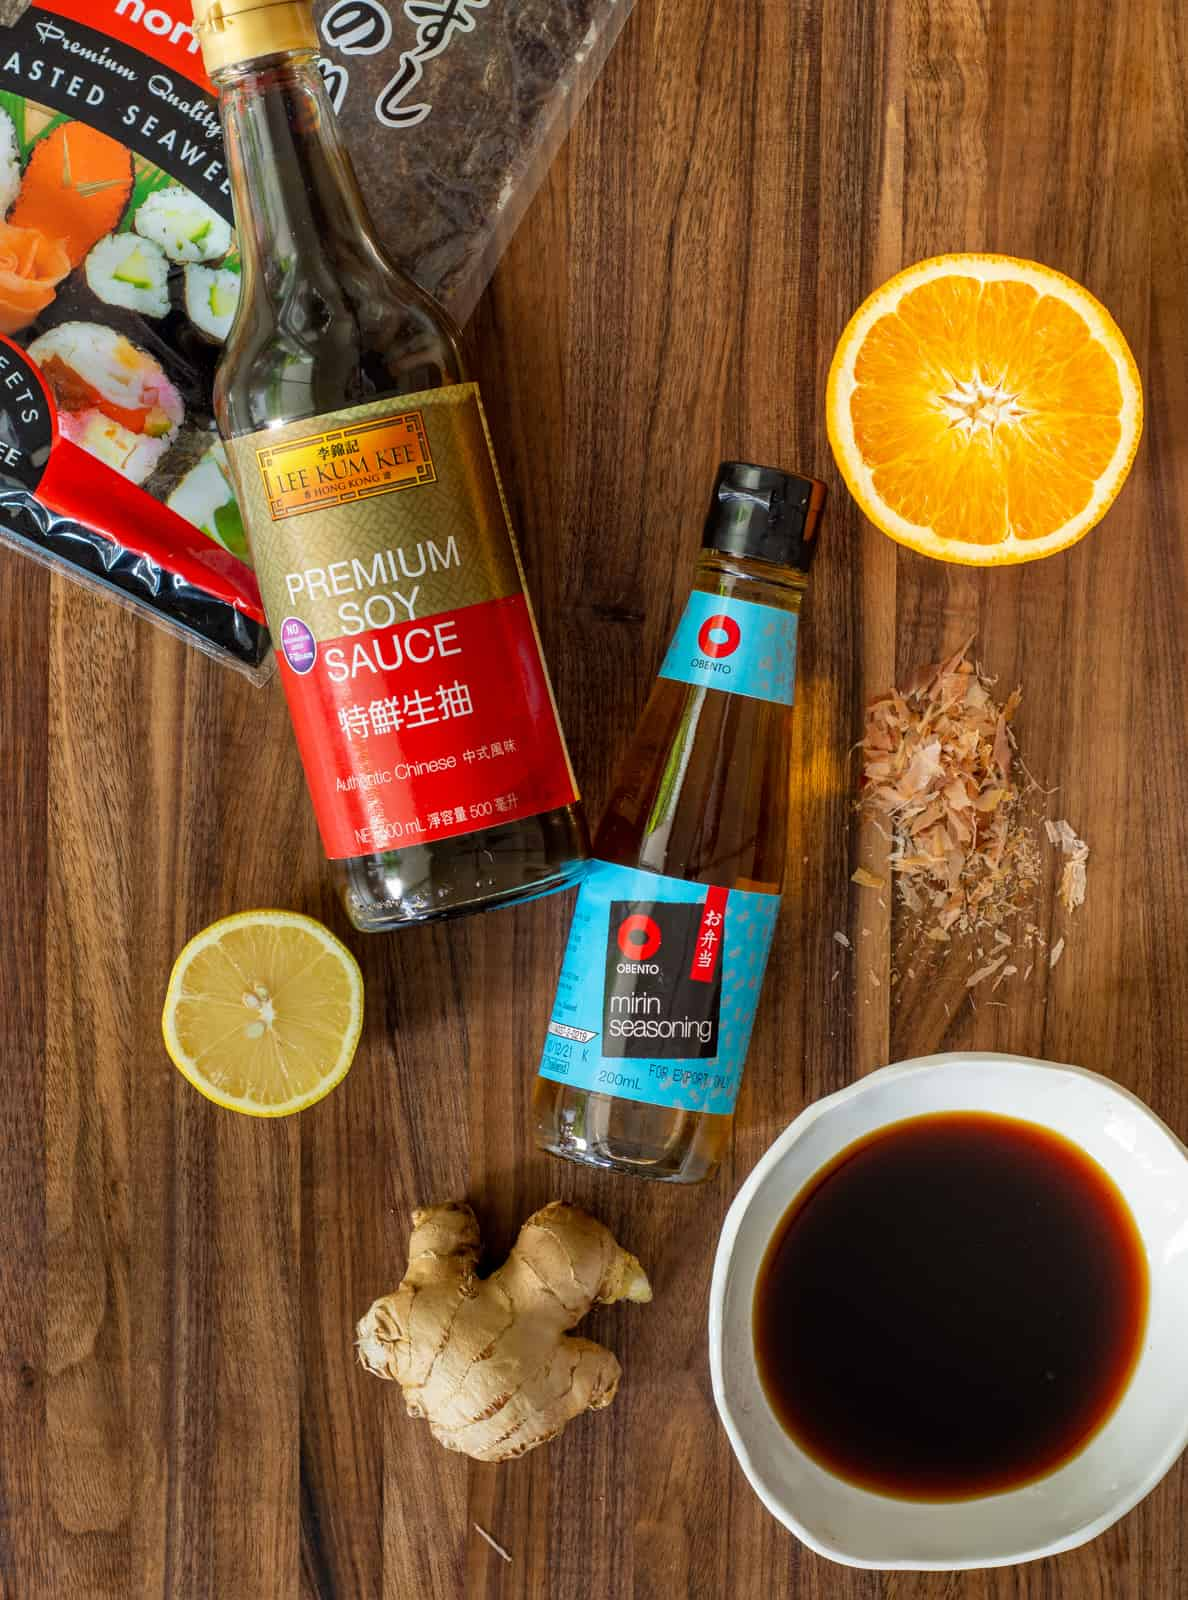 Ponzu sauce ingredients on a chopping board